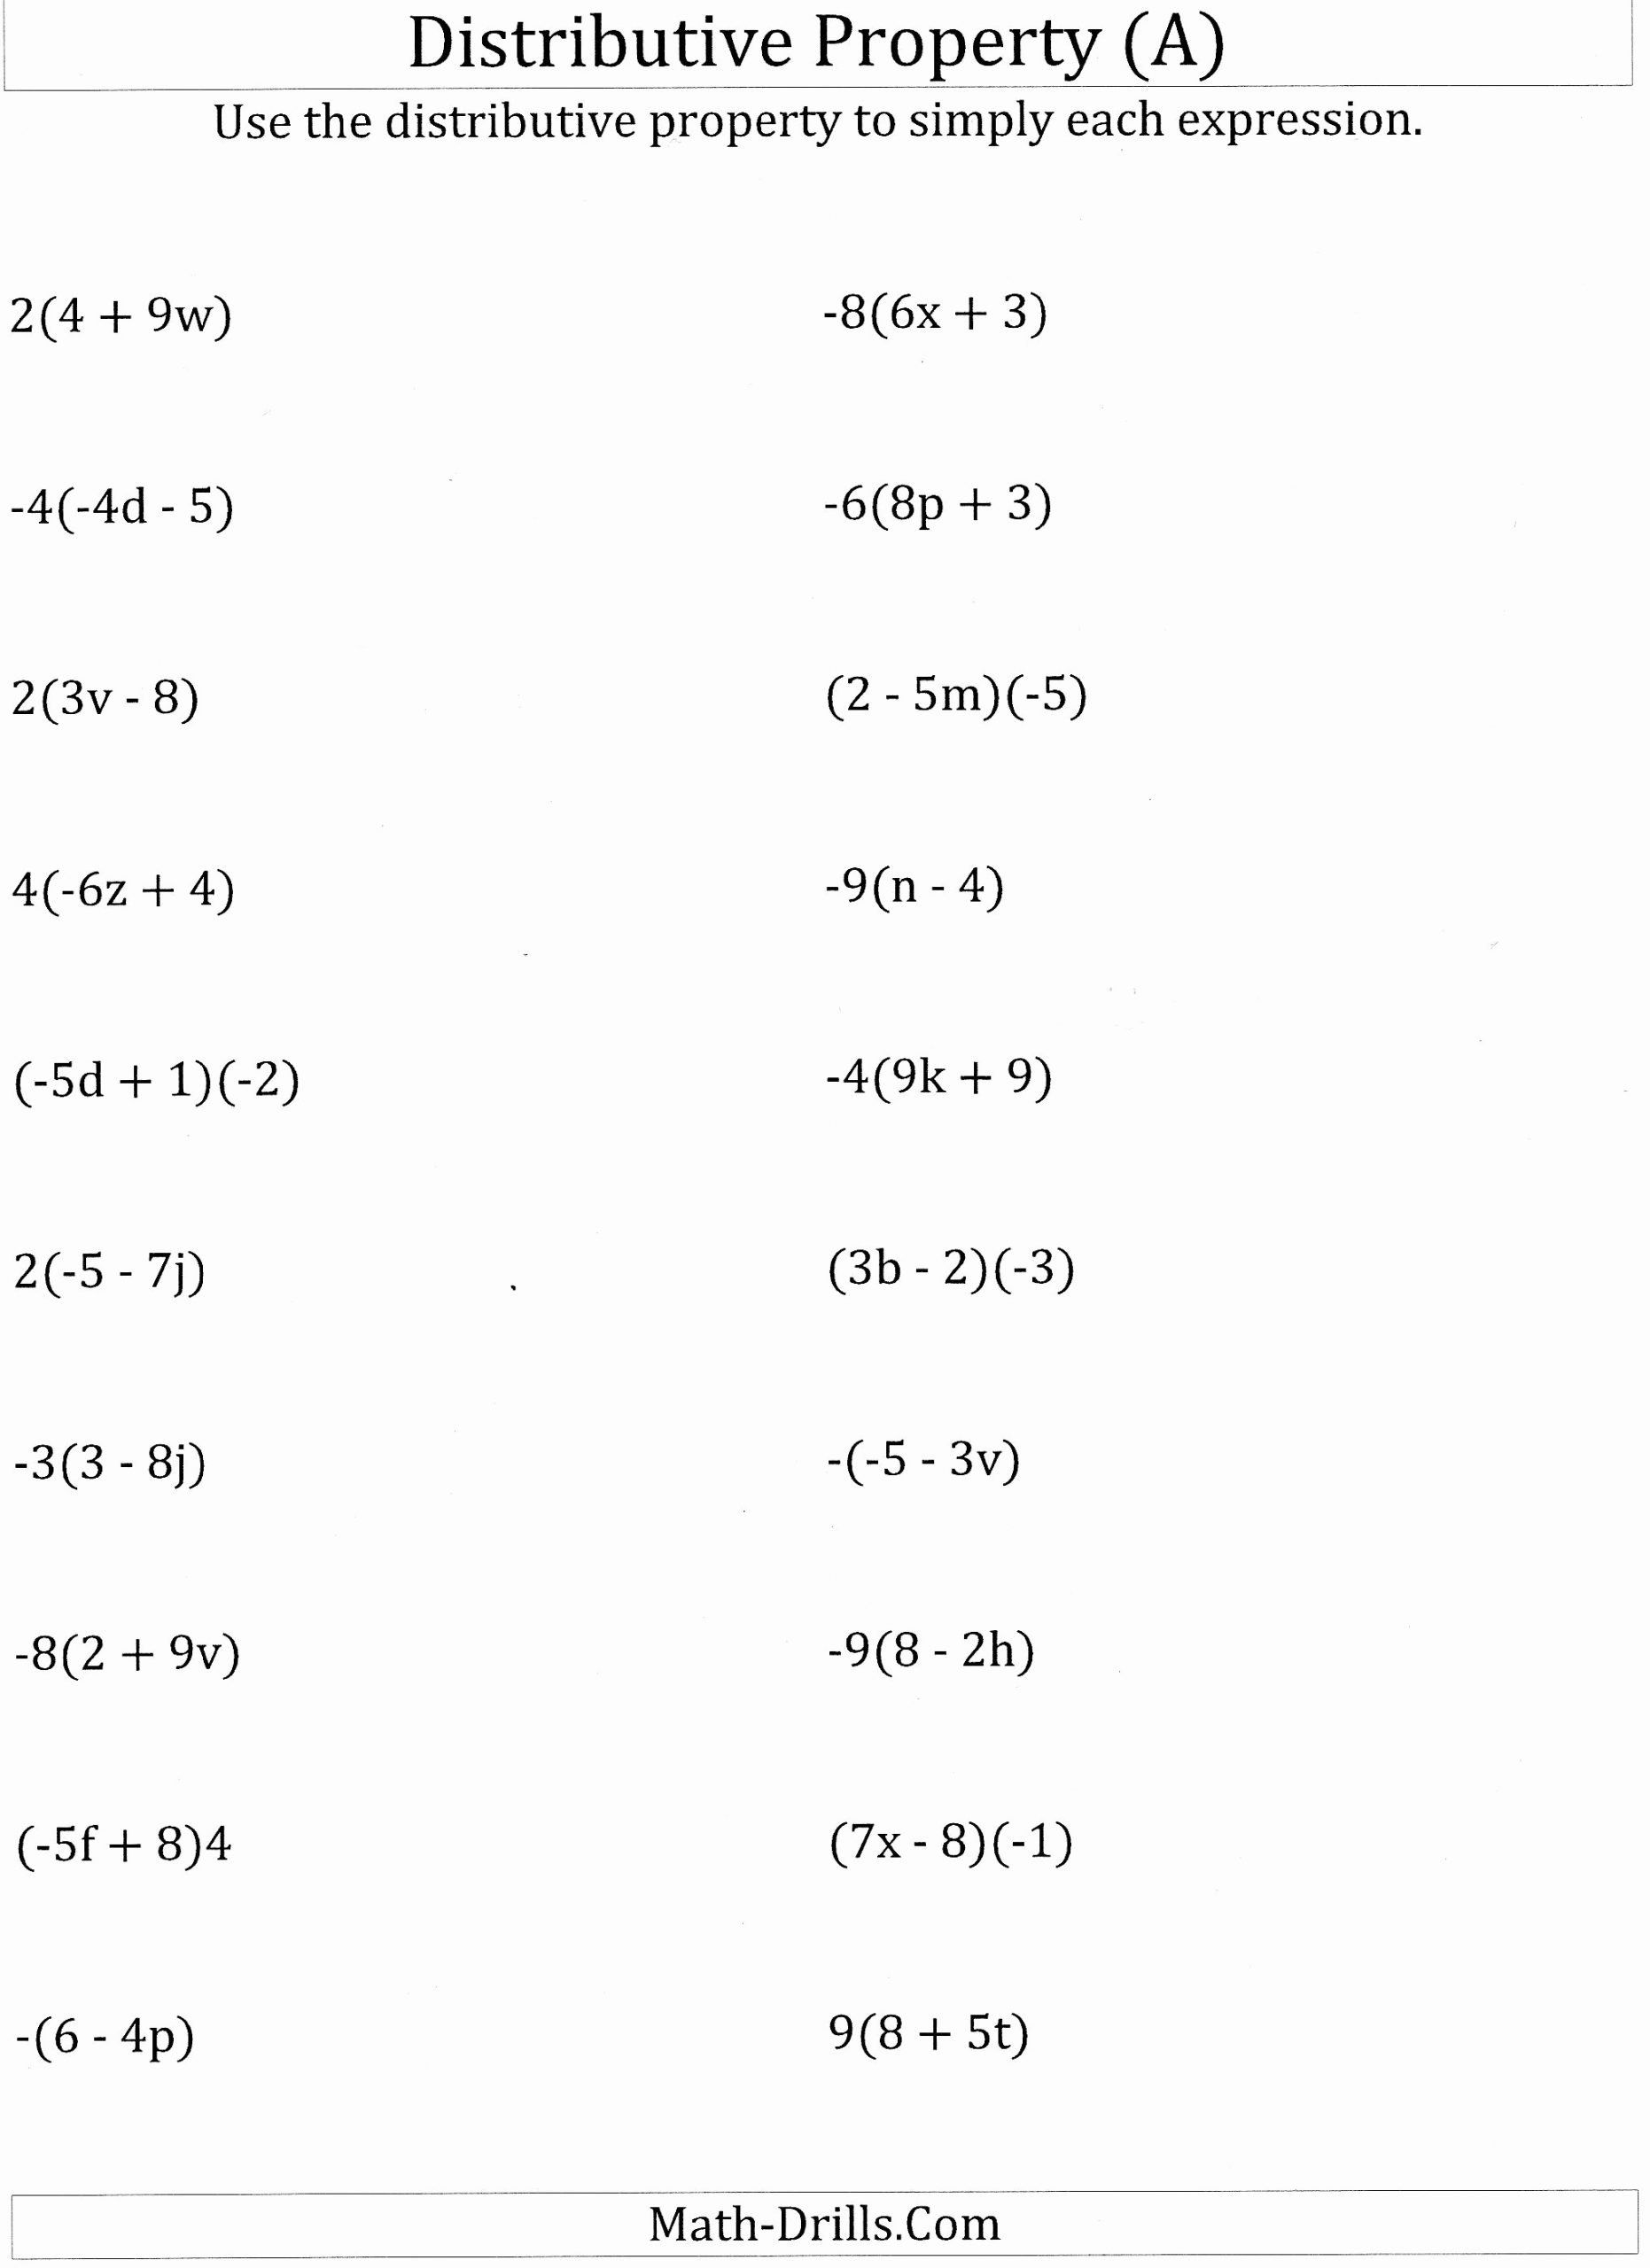 Distributive Property with Variables Worksheet Lovely Worksheet Math Worksheets Distributive Property